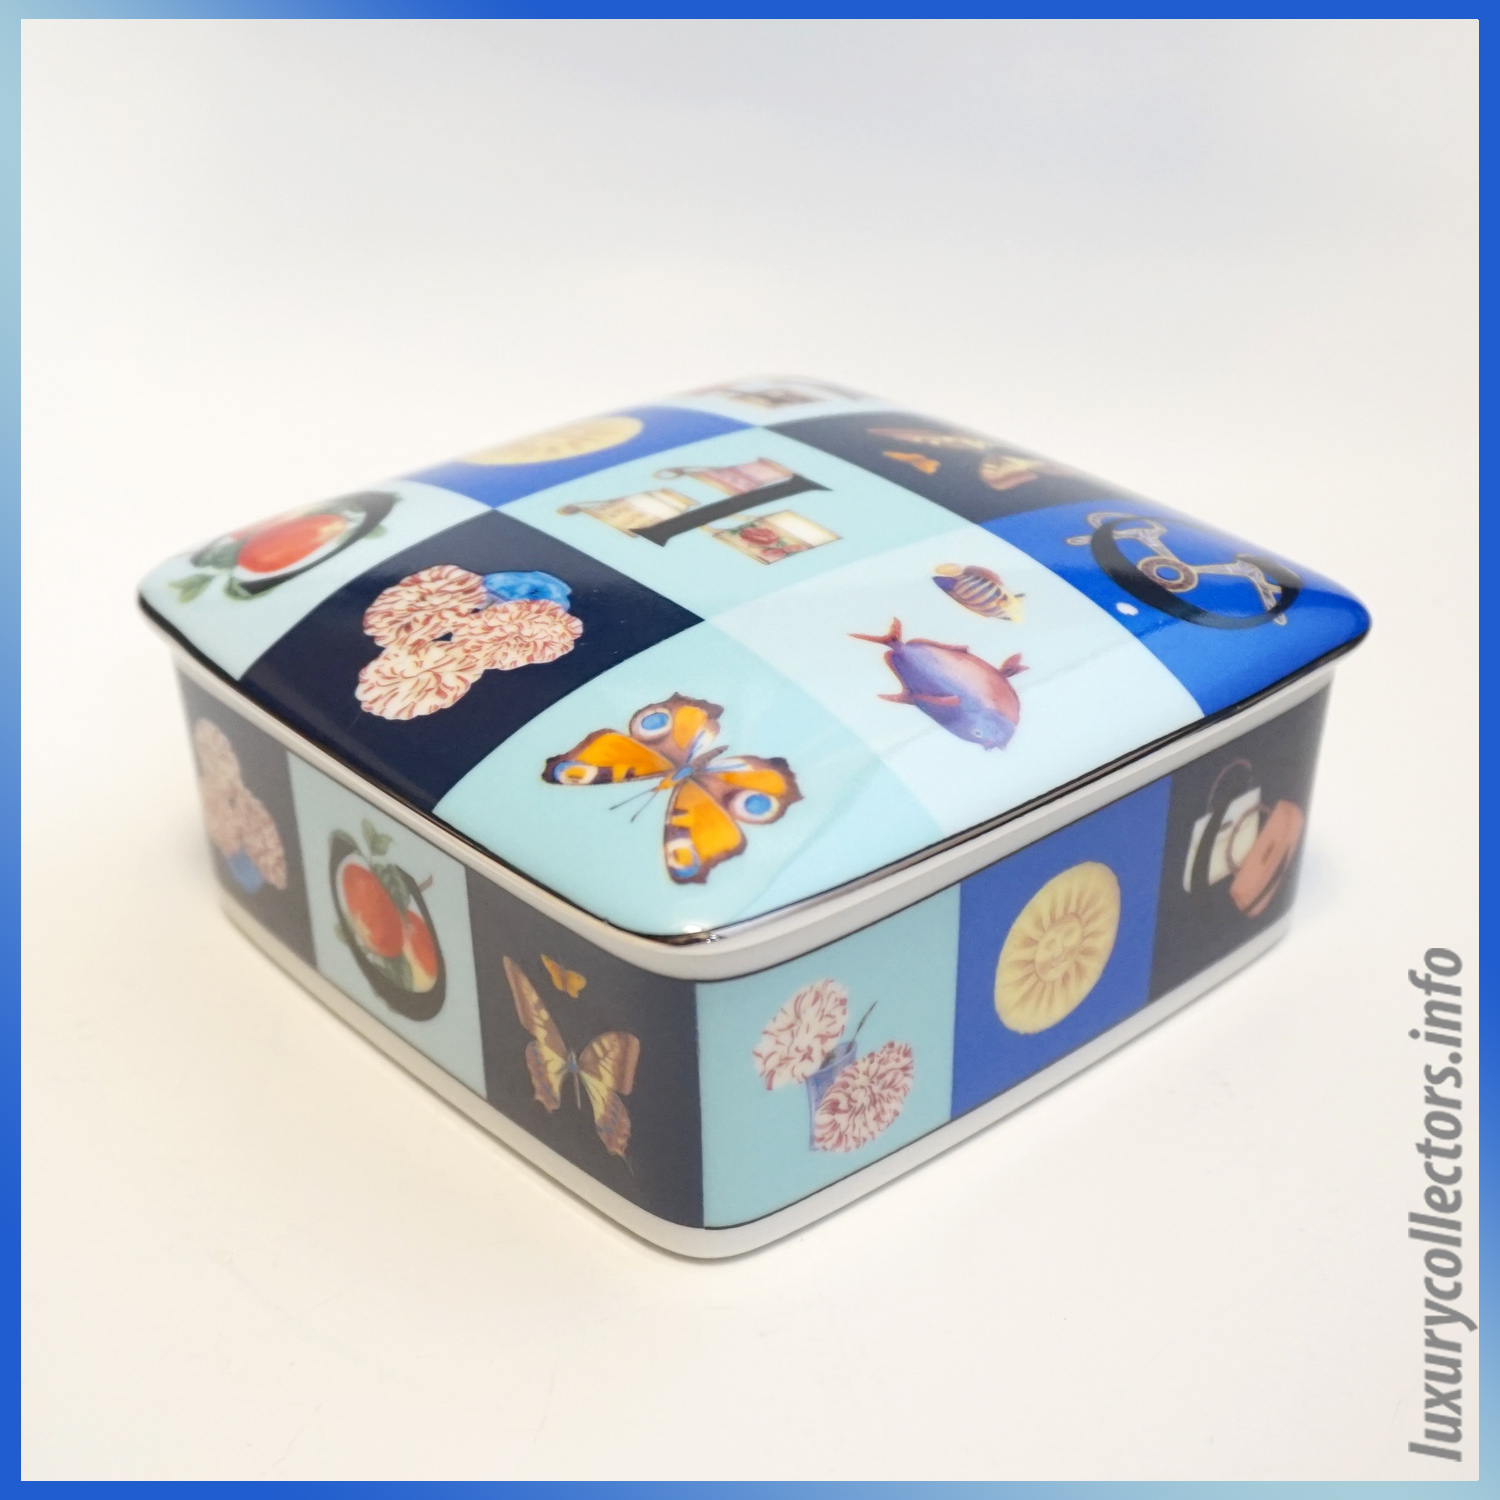 Gucci Home Housewares Decor Tableware Coffee China Porcellana Covered Box lid Candy Butterfly